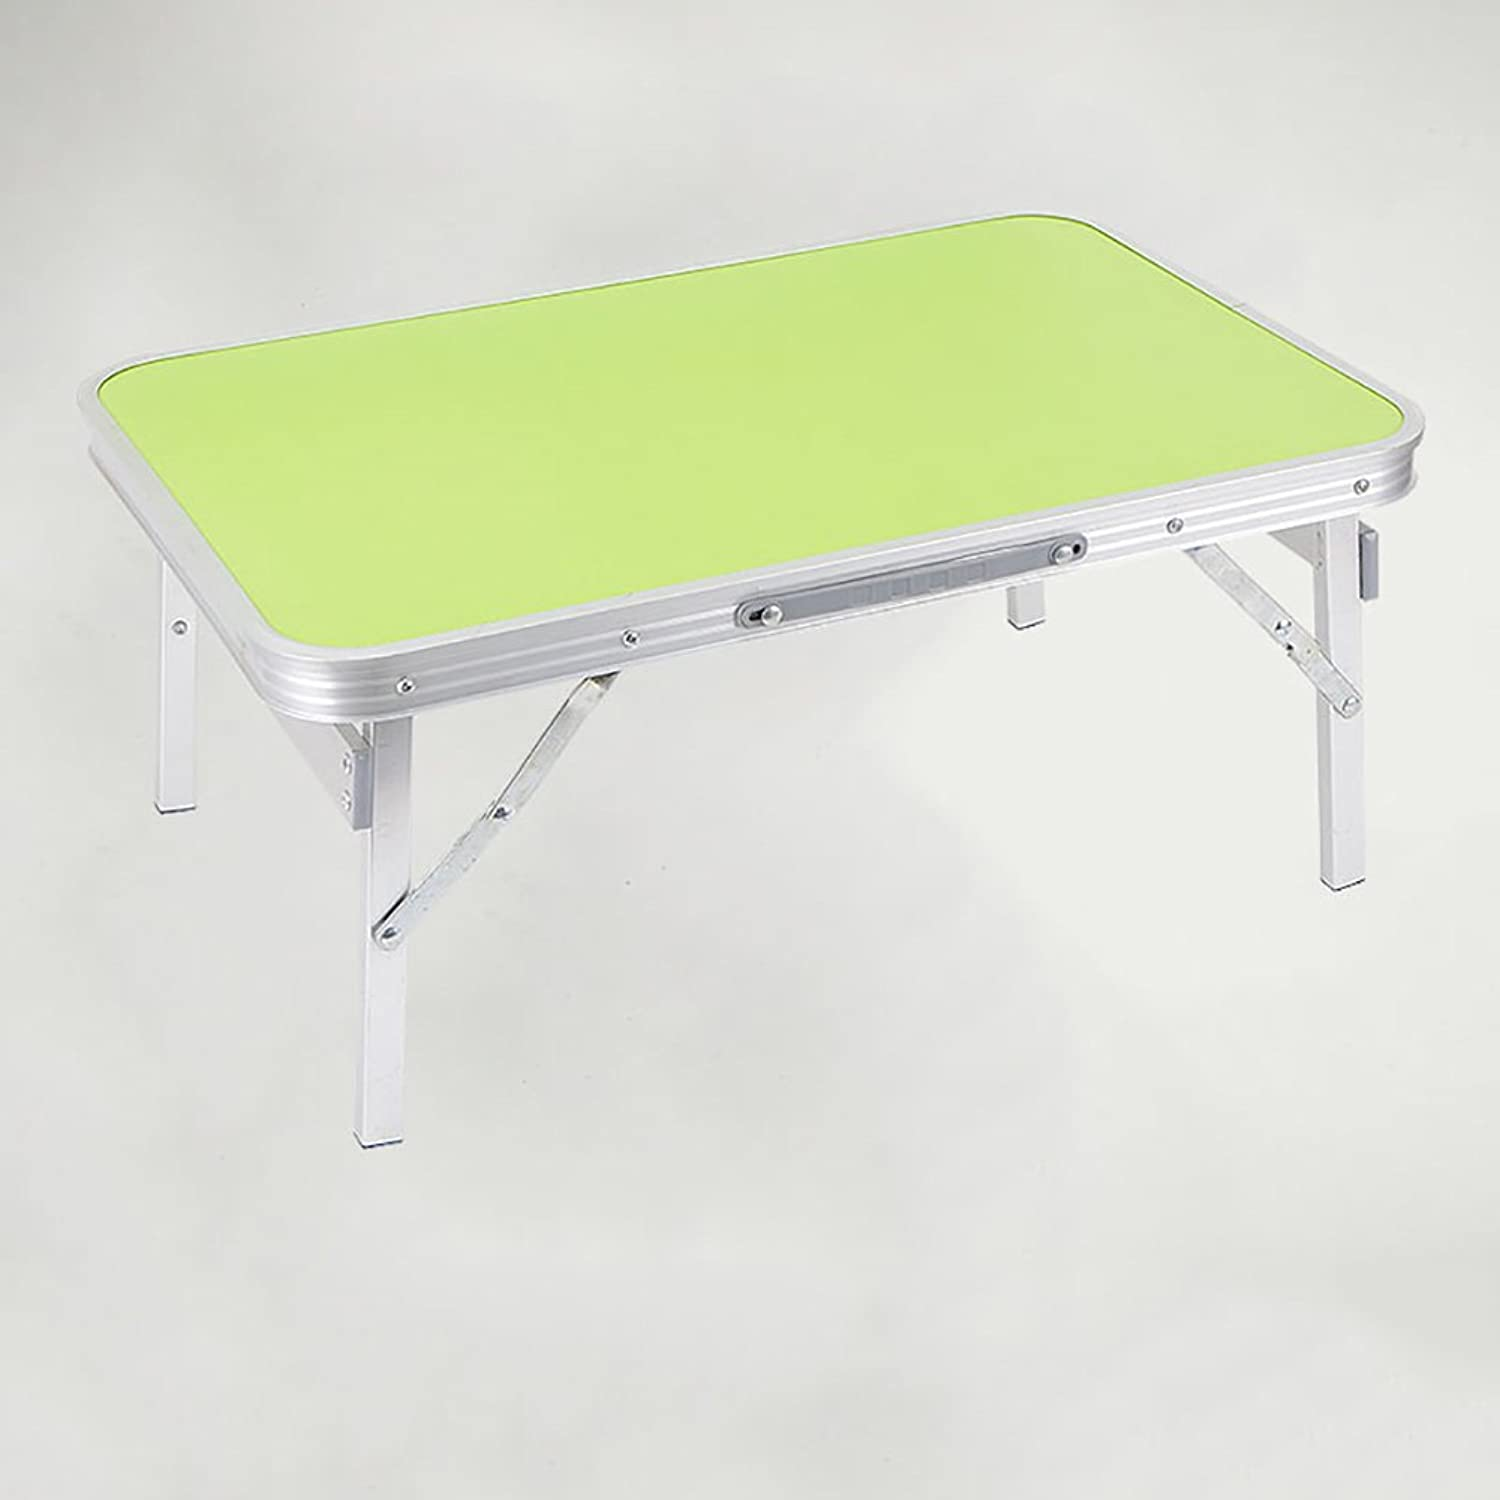 TY BEI Small Wooden Folding Table - Computer Desk - Camping with Handles and 4 Foot Portable Square Dining Table   (color   Green, Size   60  40  25cm)